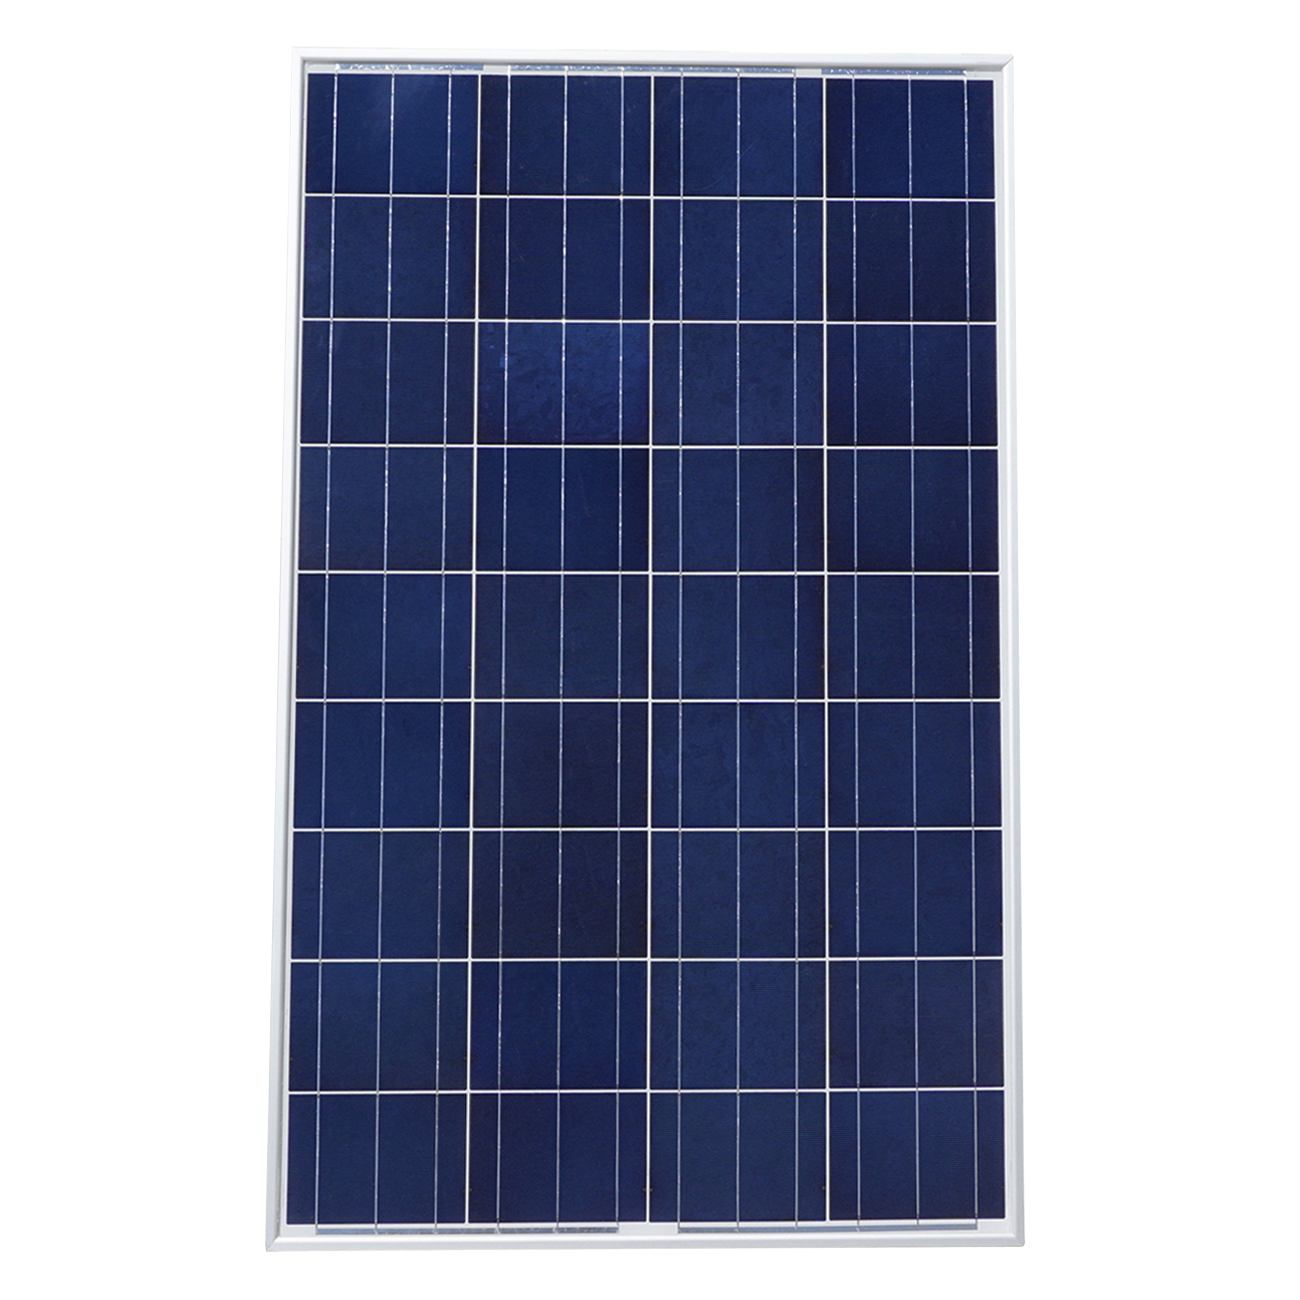 AU CA EU USA Stock 100W 18V Polycrystalline Solar Panel for 12v Battery Off Grid System Solar for Home System au eu usa stock complete kit 600w solar panel cells off grid system 600w solar system for home free shipping